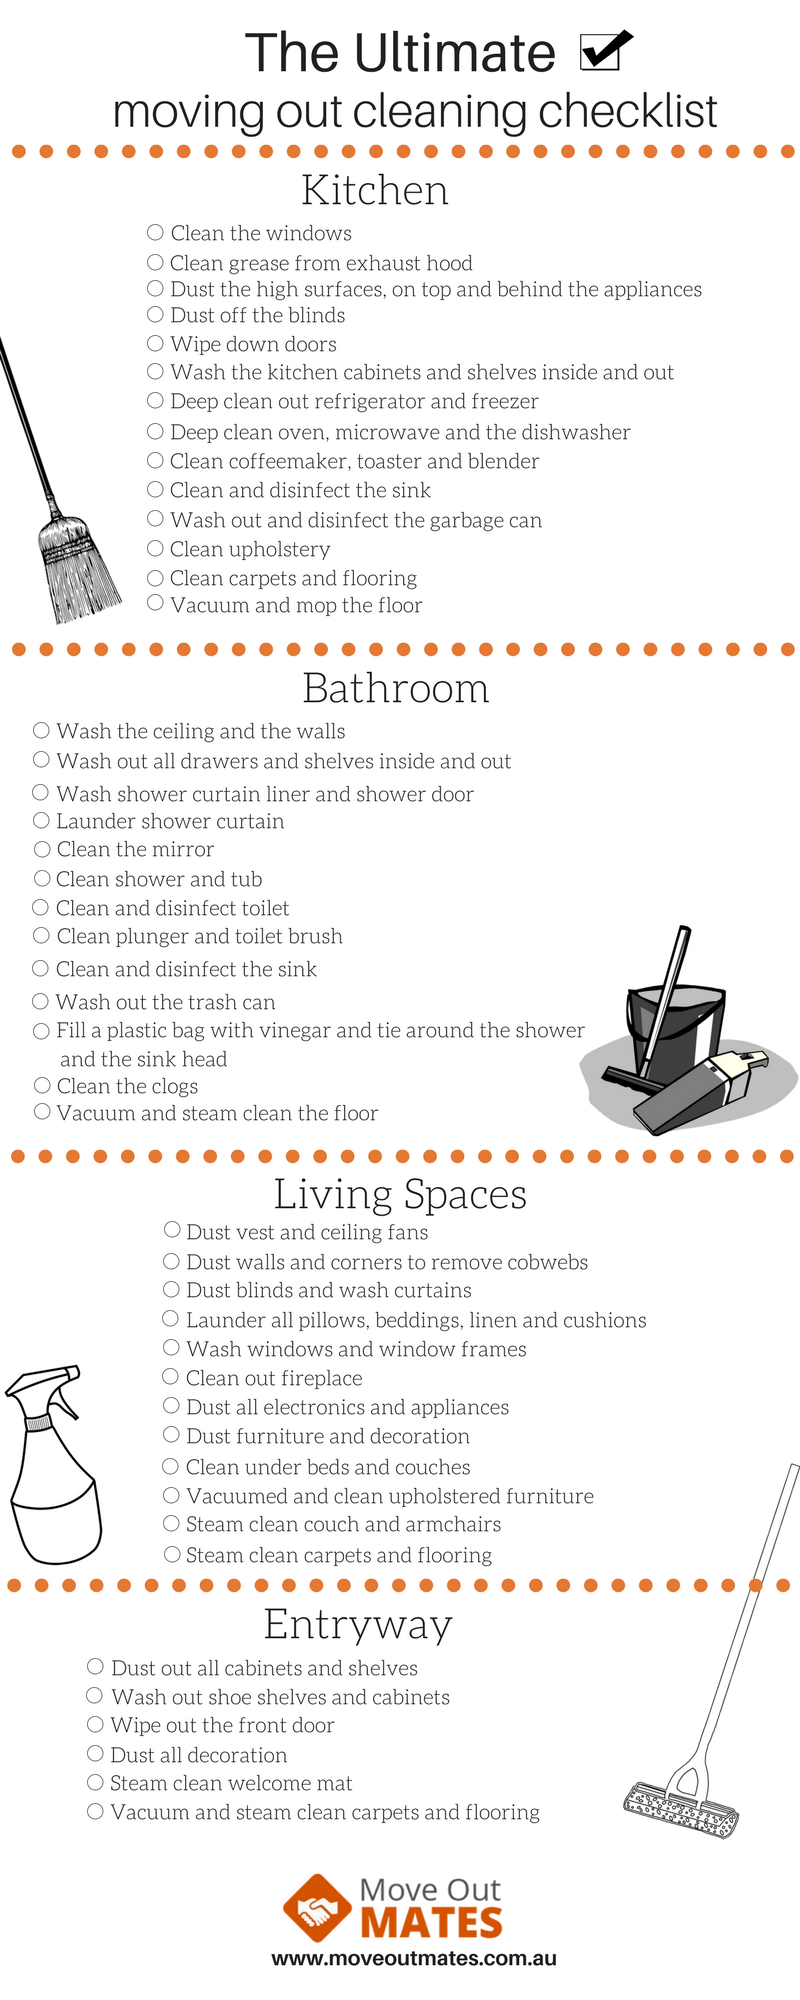 The ultimate moving out cleaning checklist | Moving out ...